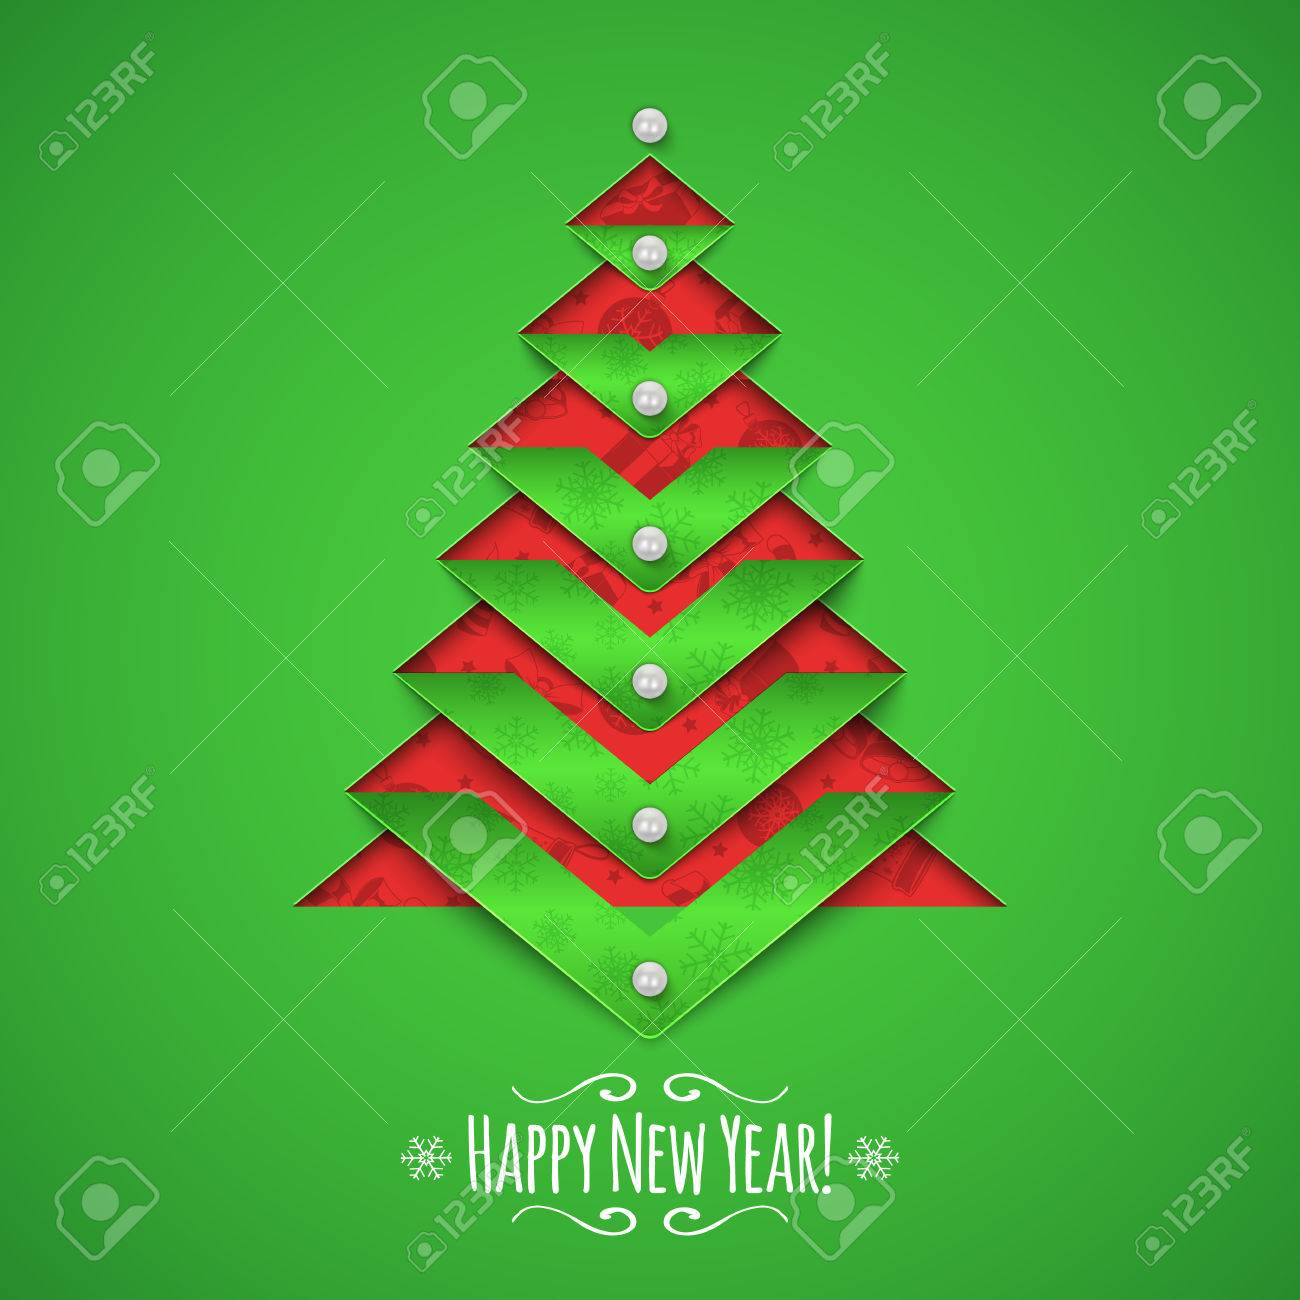 Christmas Tree Cut Out.Paper Cut Out Christmas Tree And Text Greeting Card Vector Template